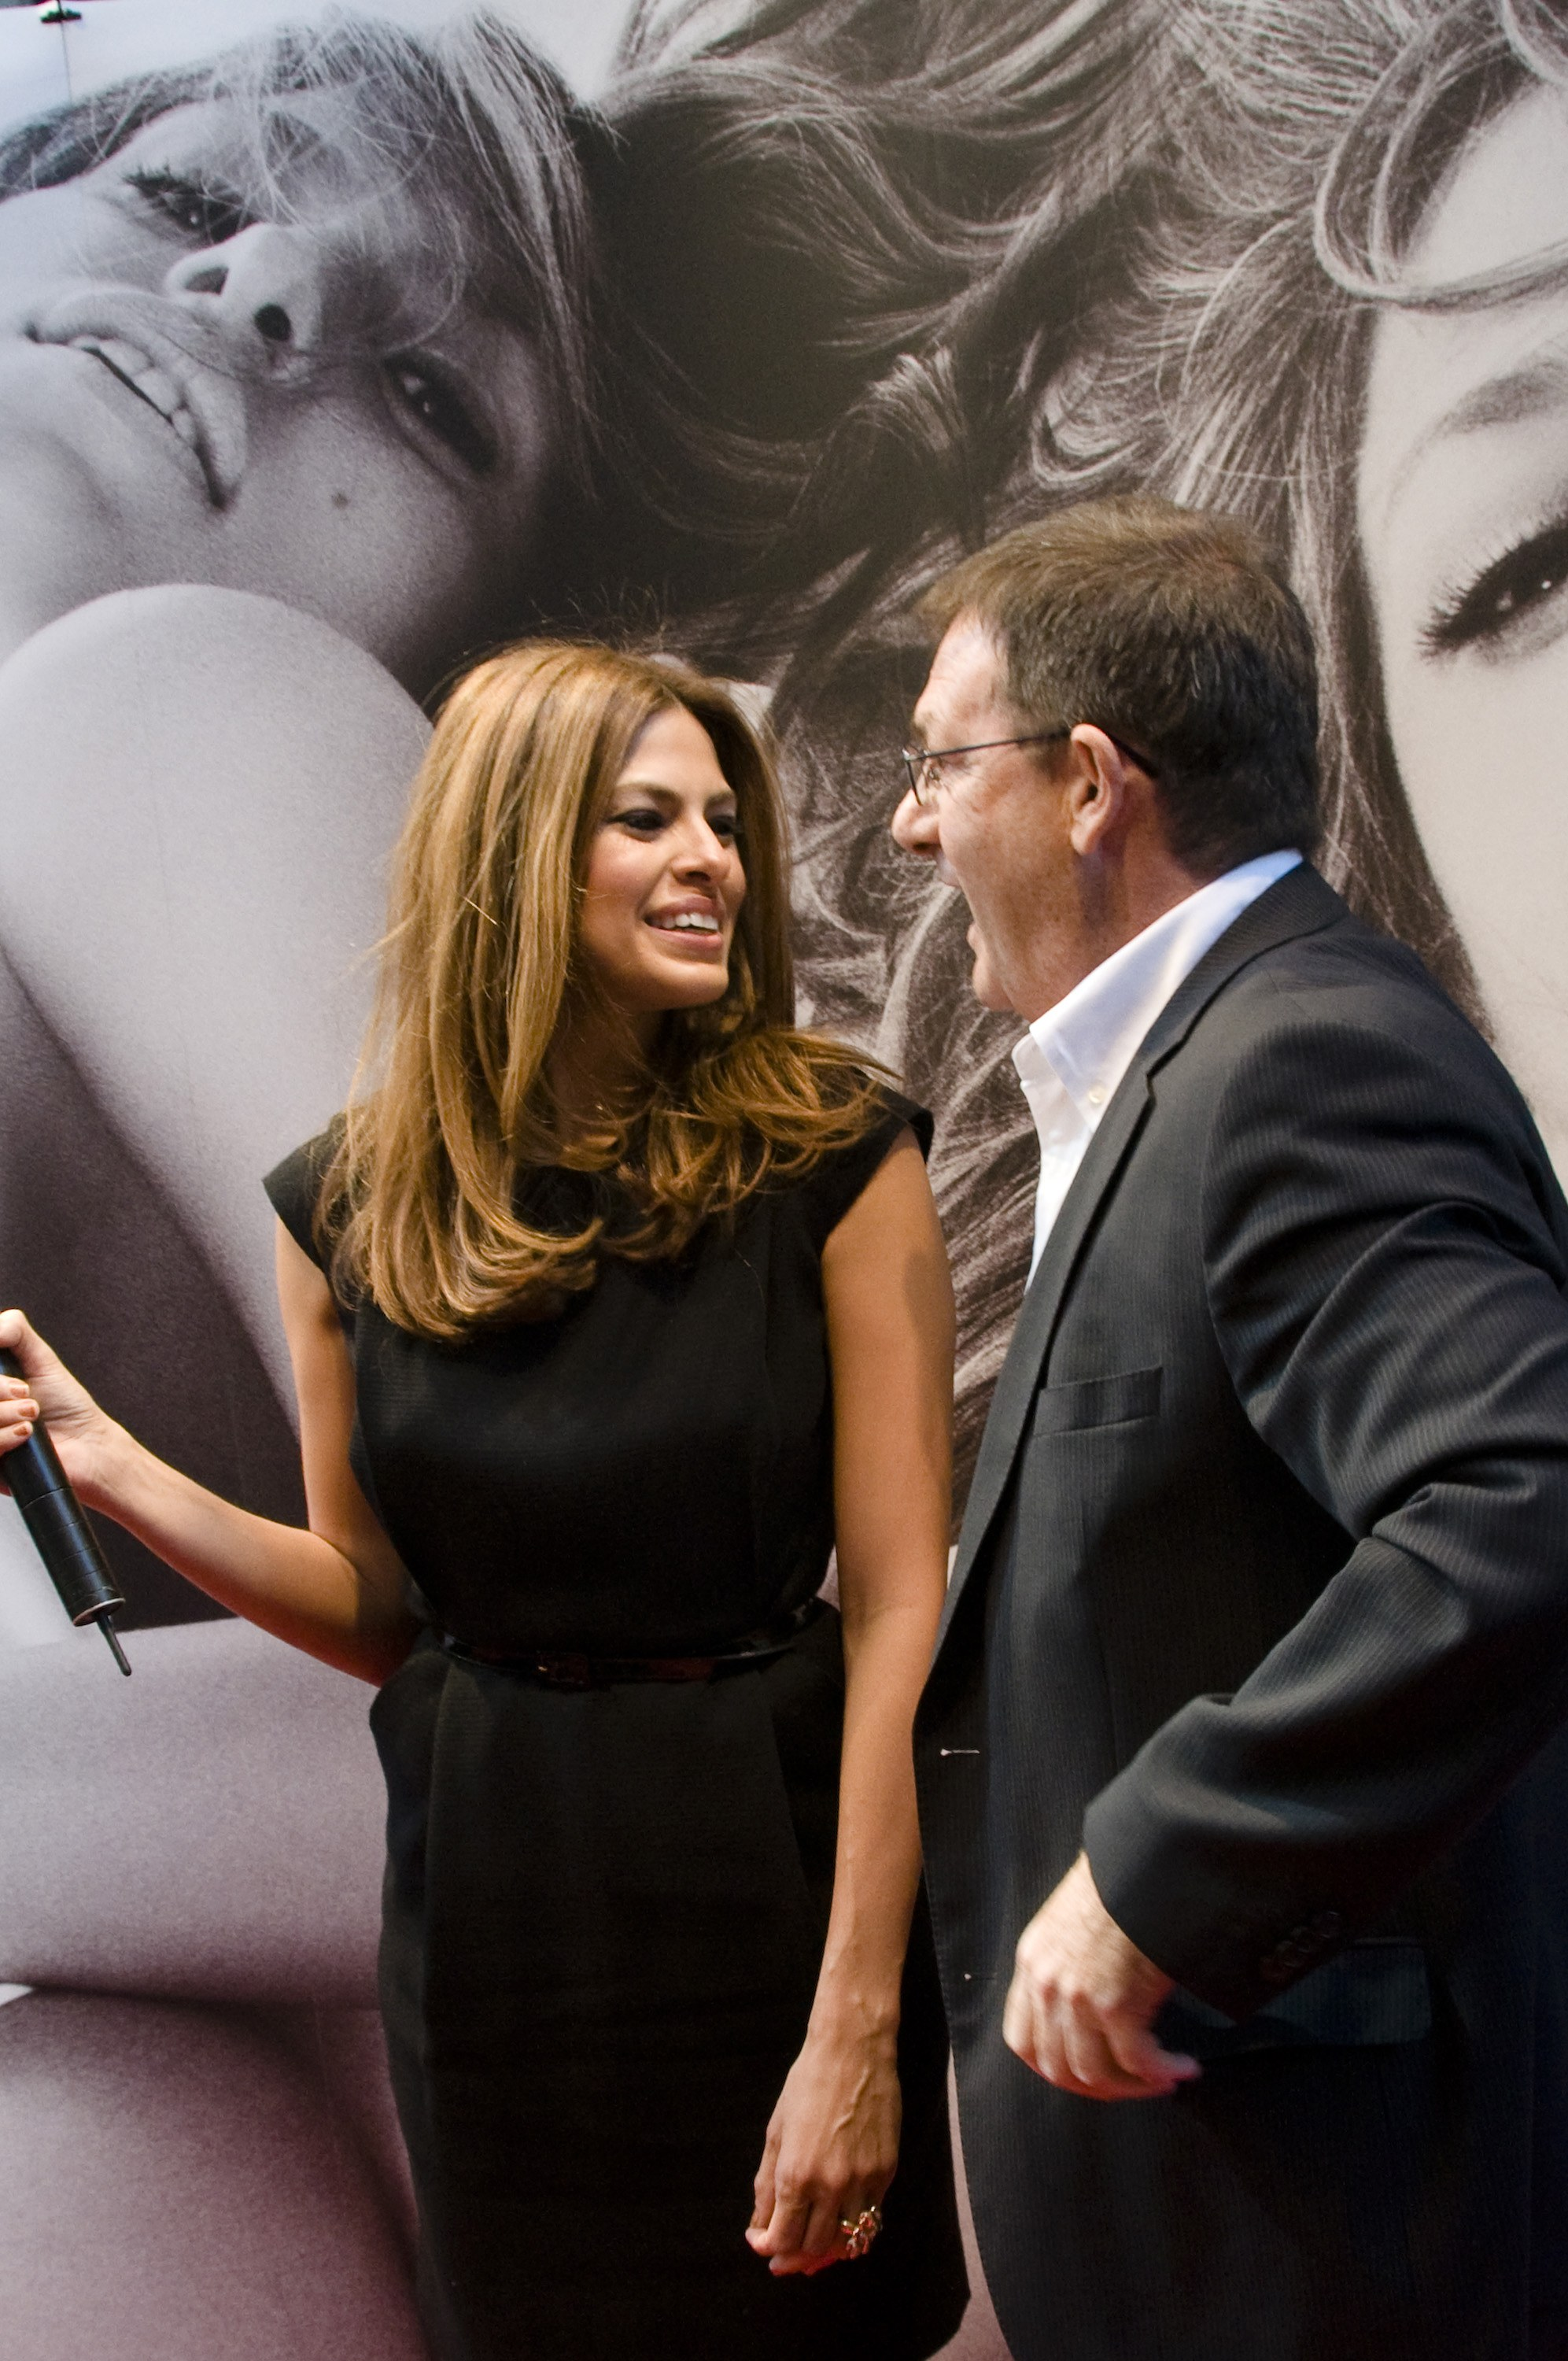 00200_Eva_Mendes_in_Rome_to_promote_the_new_fragrance_of_Calvin_Klein_CU_ISA_0003_122_532lo.jpg